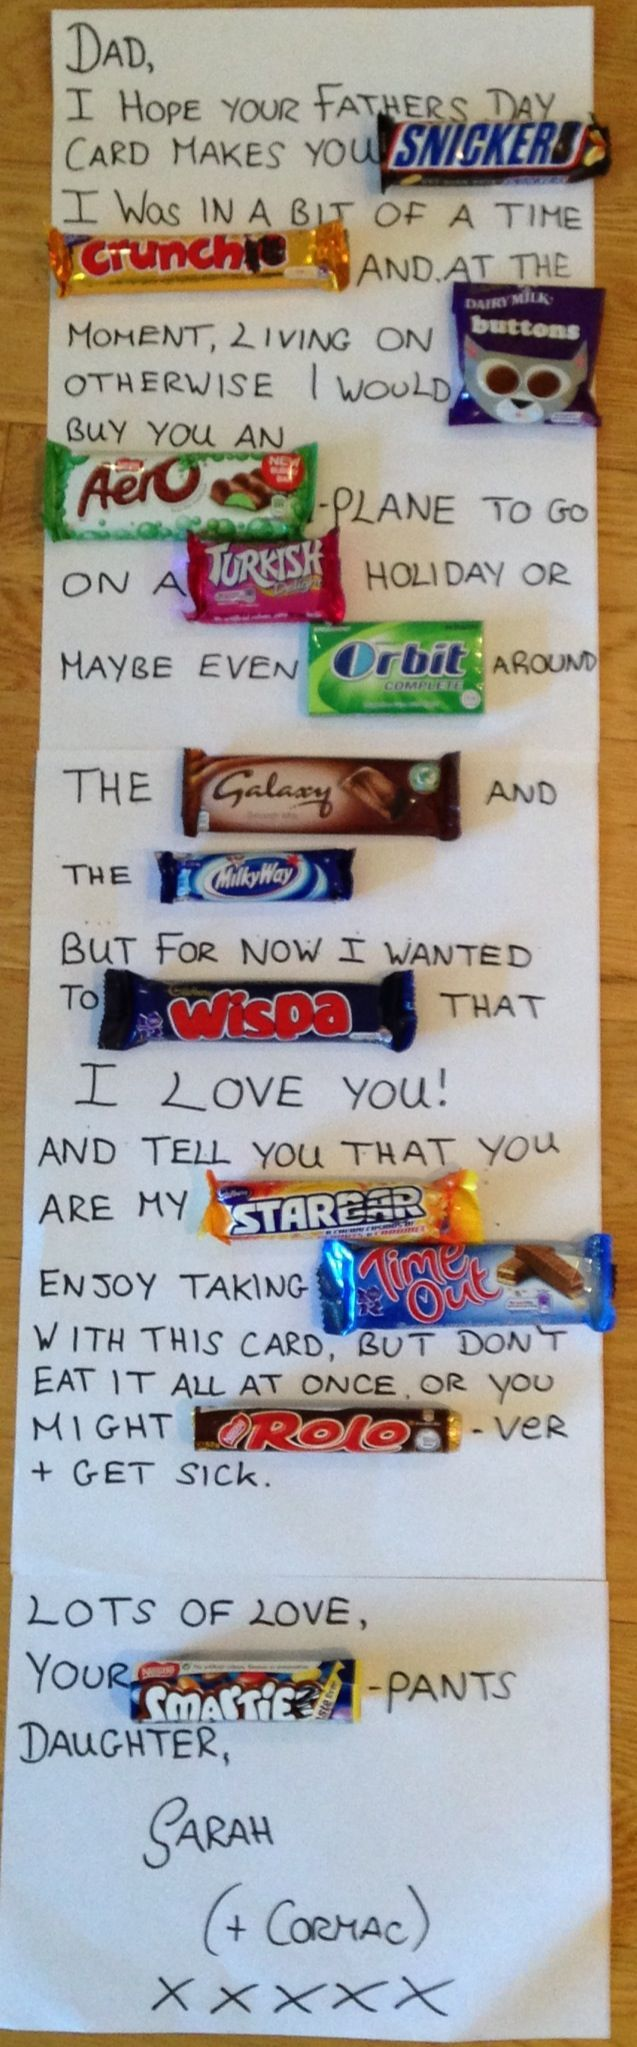 Sarah, you're a genius. ***wish I'd thought to do this for my Dad while he was a...